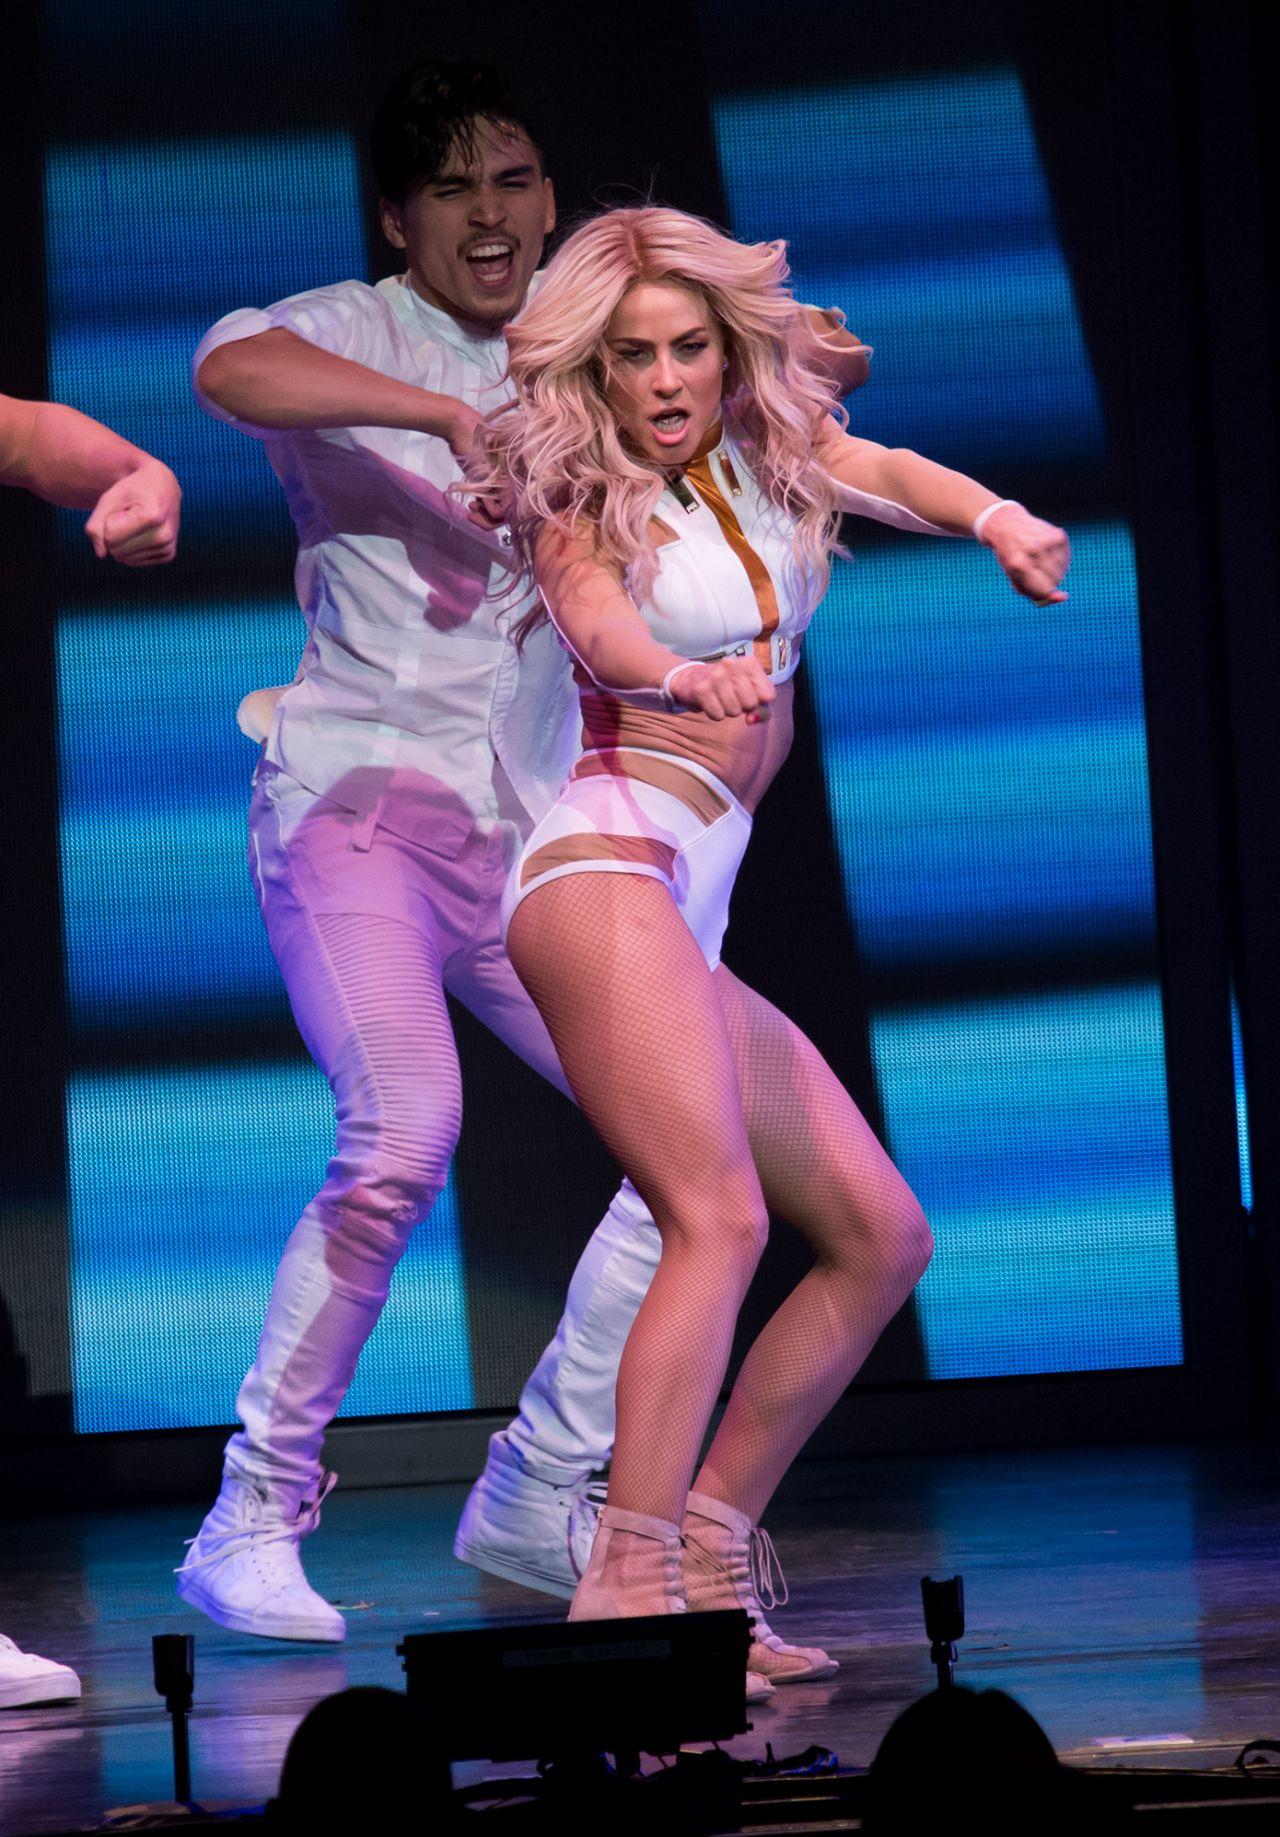 Julianne Hough Performs On Tour In New York 05 06 2017